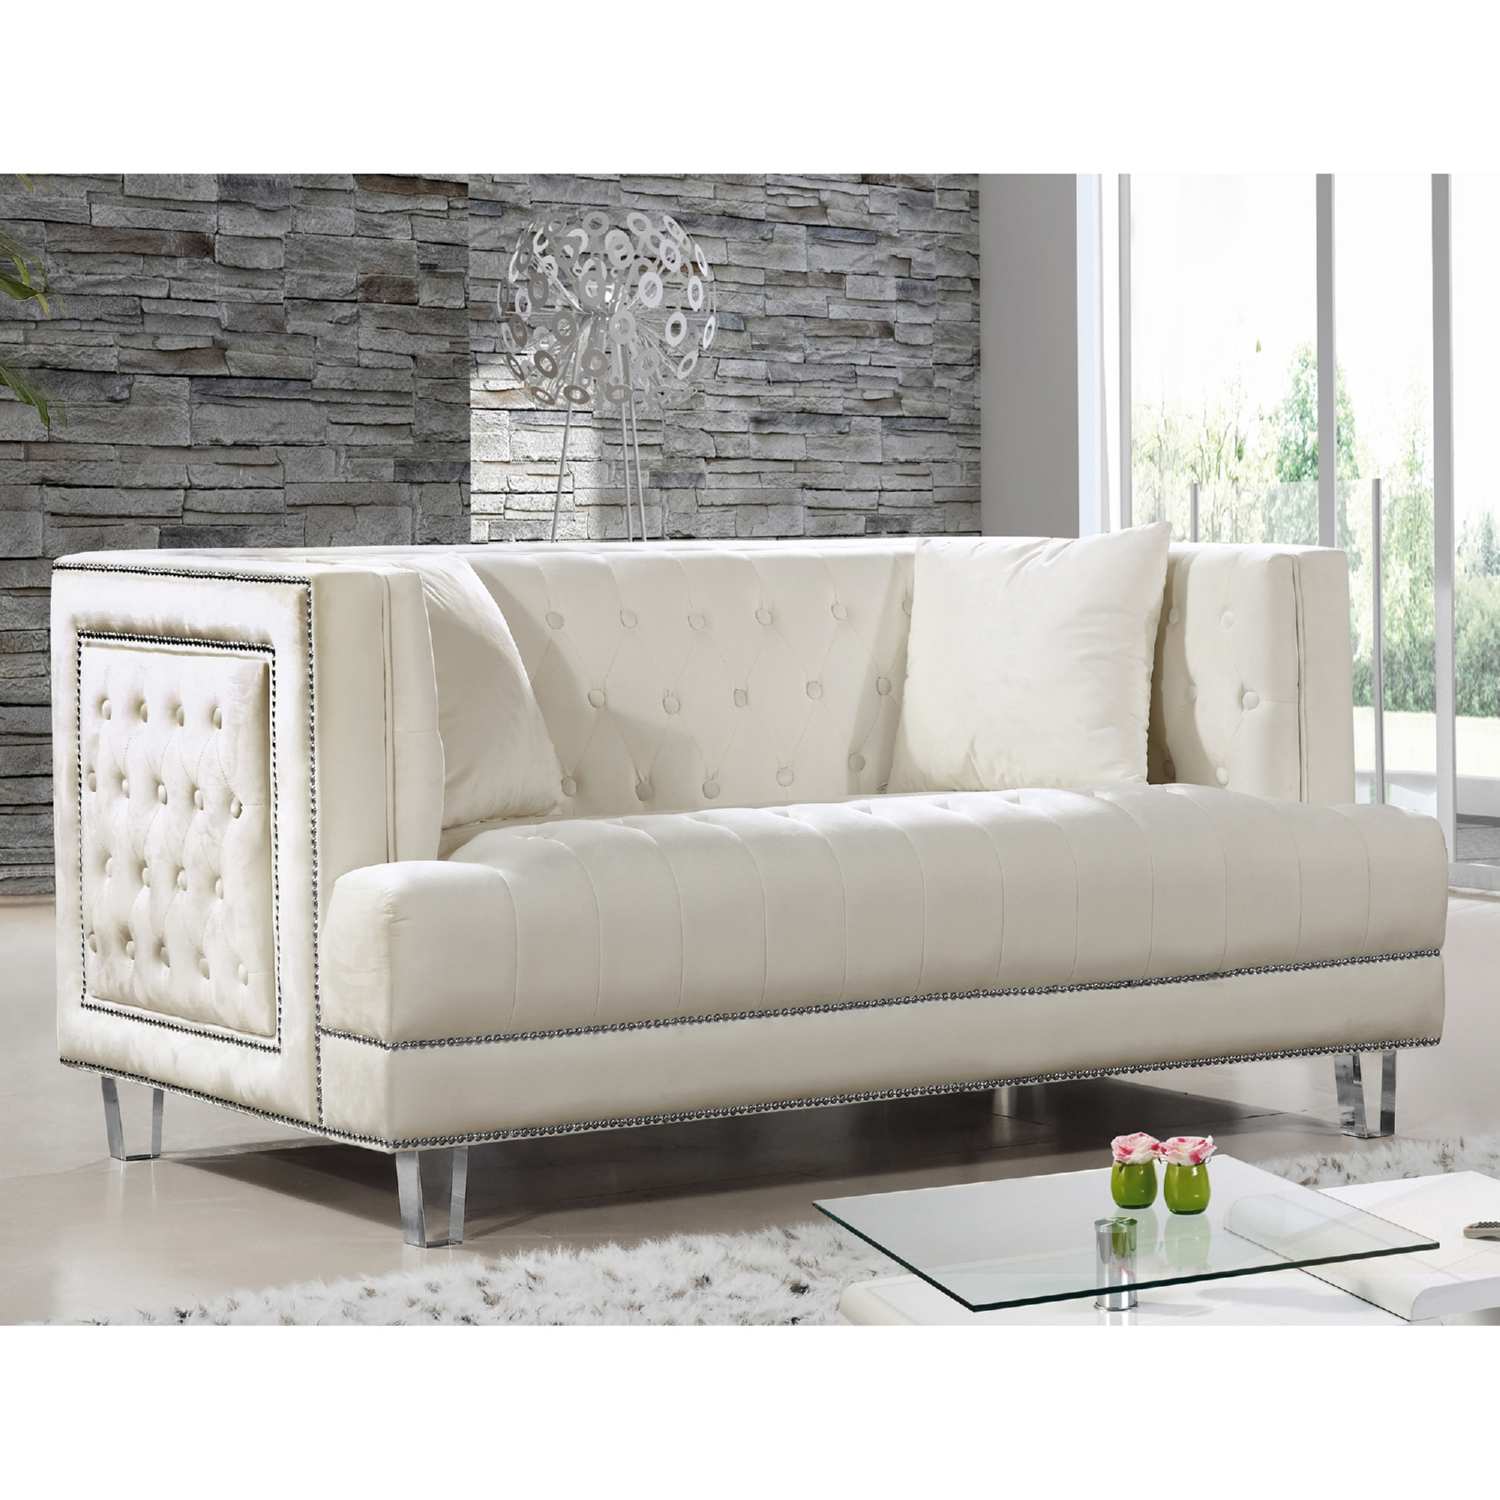 Tufted Nailhead Sofa Nailhead Trim Tufted Sofa Neiman Marcus Thesofa